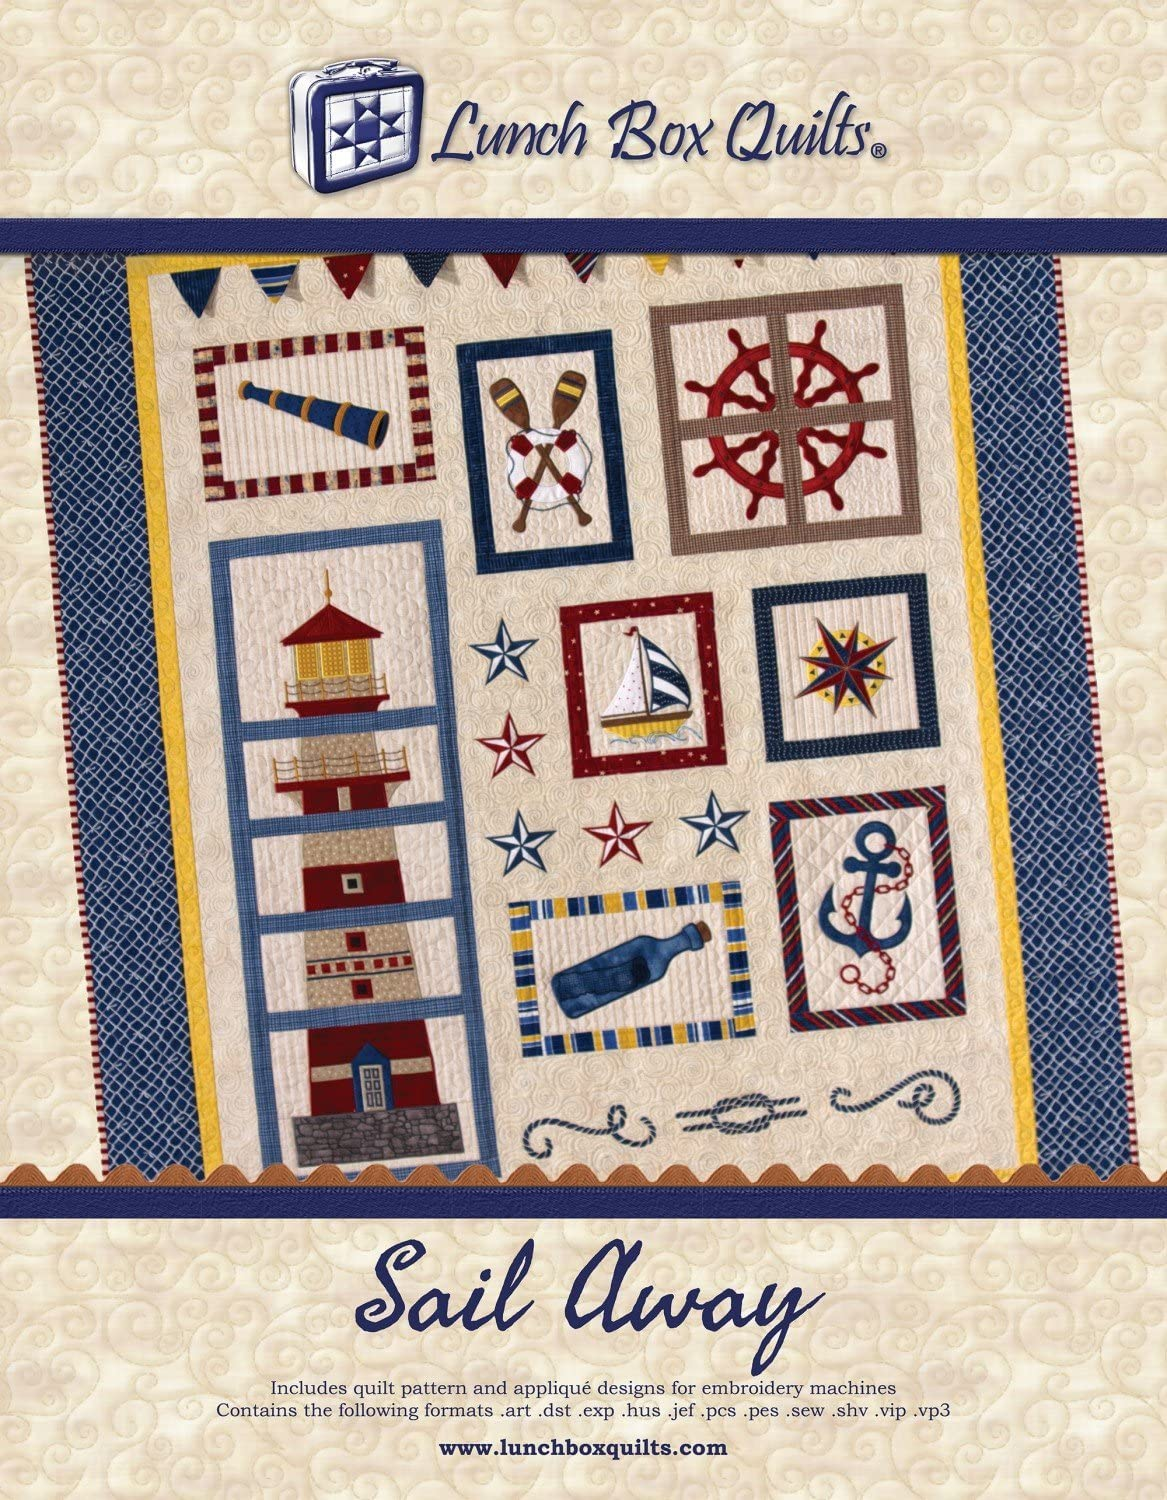 Lunch Year-end gift Box Quilts Sail Away wit Embroidery Quilt Louisville-Jefferson County Mall Pattern Applique